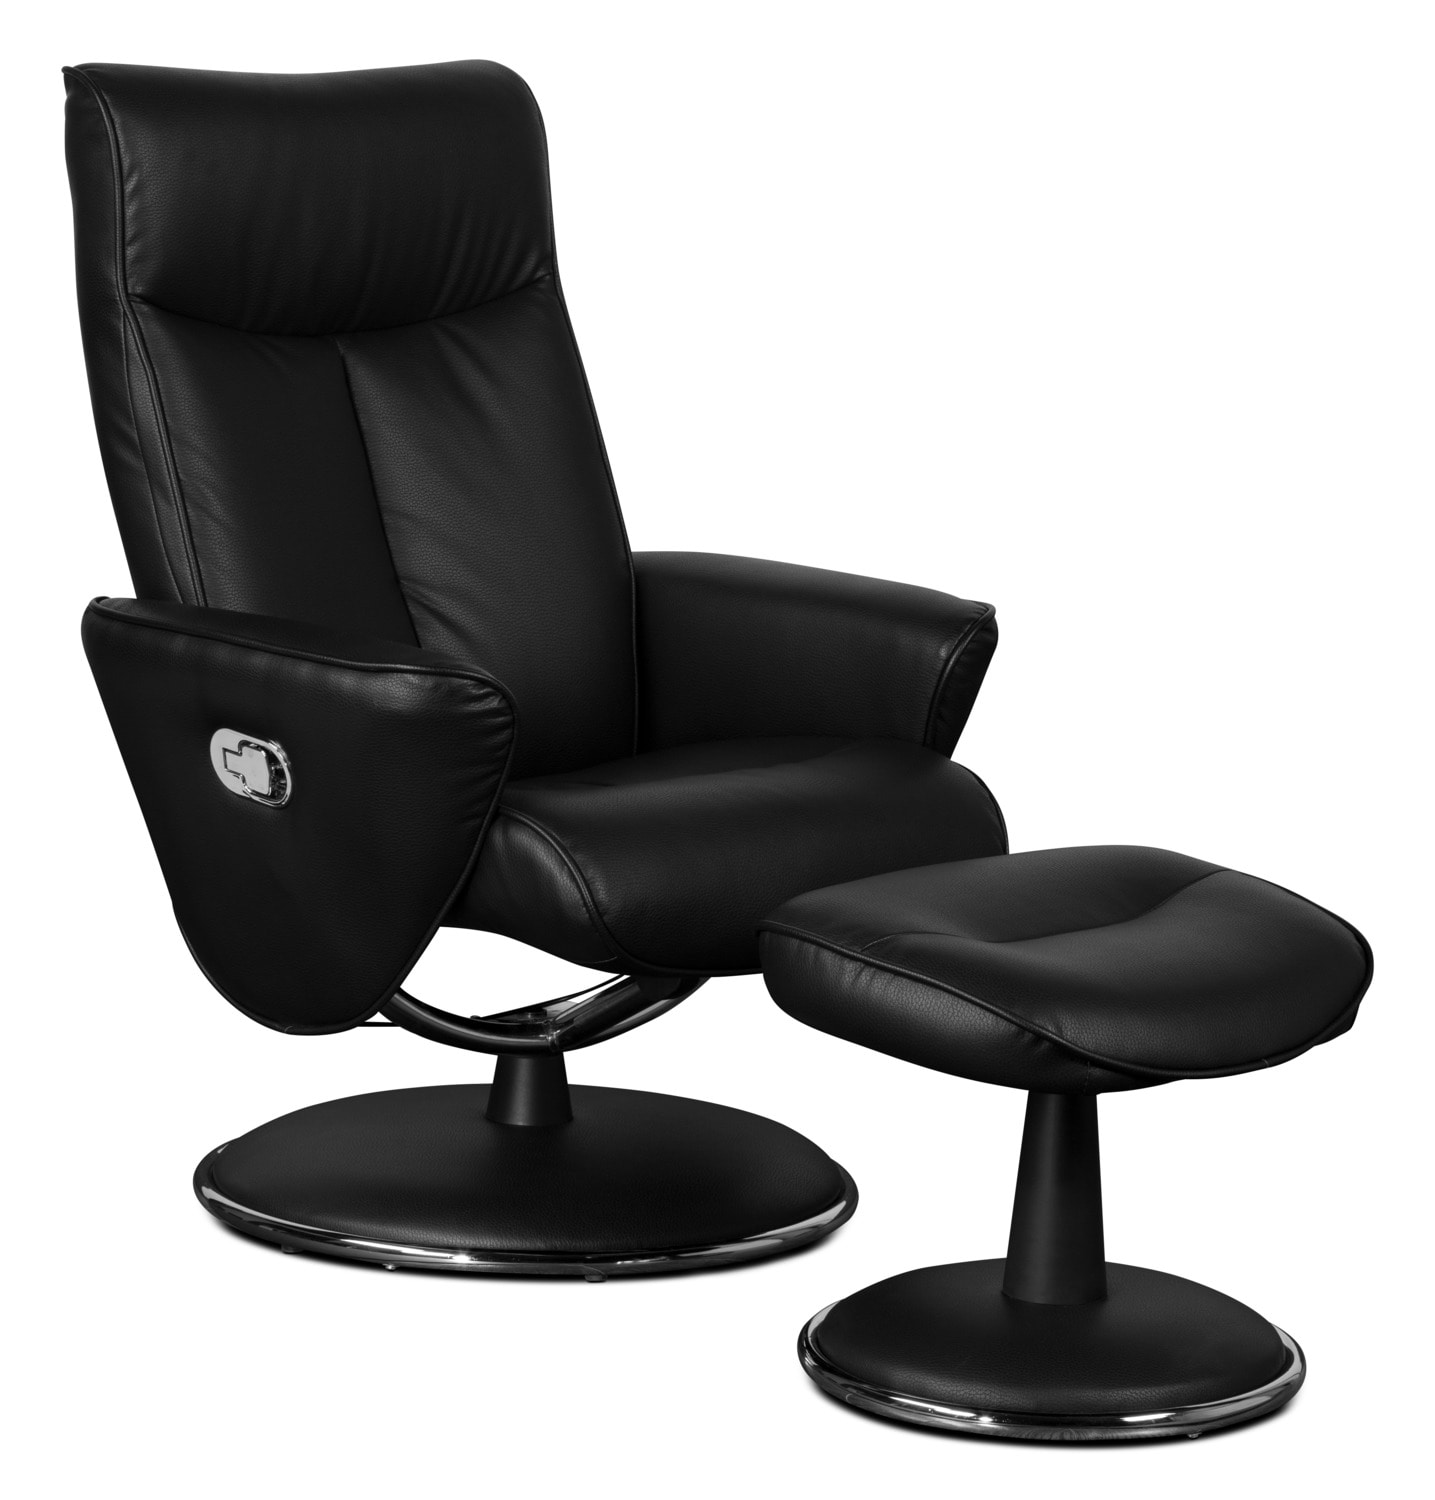 Vance Faux Leather Swivel Reclining Chair with Ottoman – Black